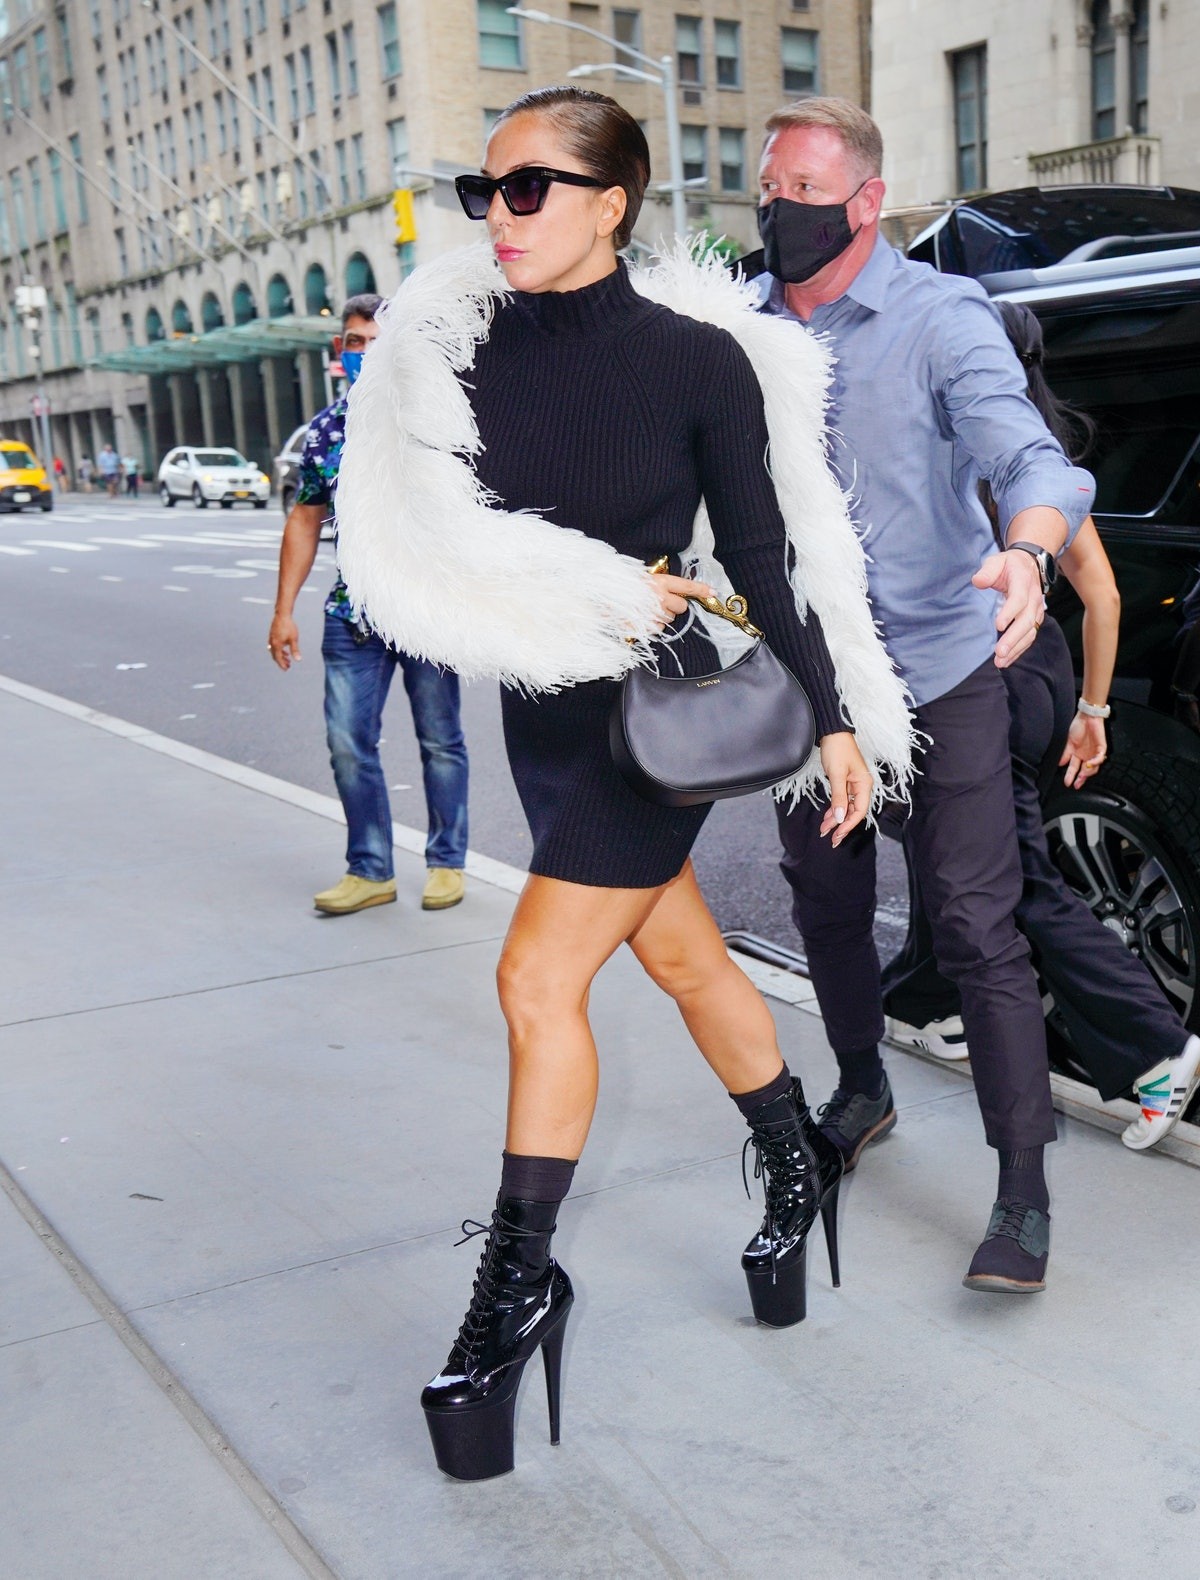 NEW YORK, NEW YORK - JULY 27: Lady Gaga out and about on July 27, 2021 in New York City. (Photo by G...